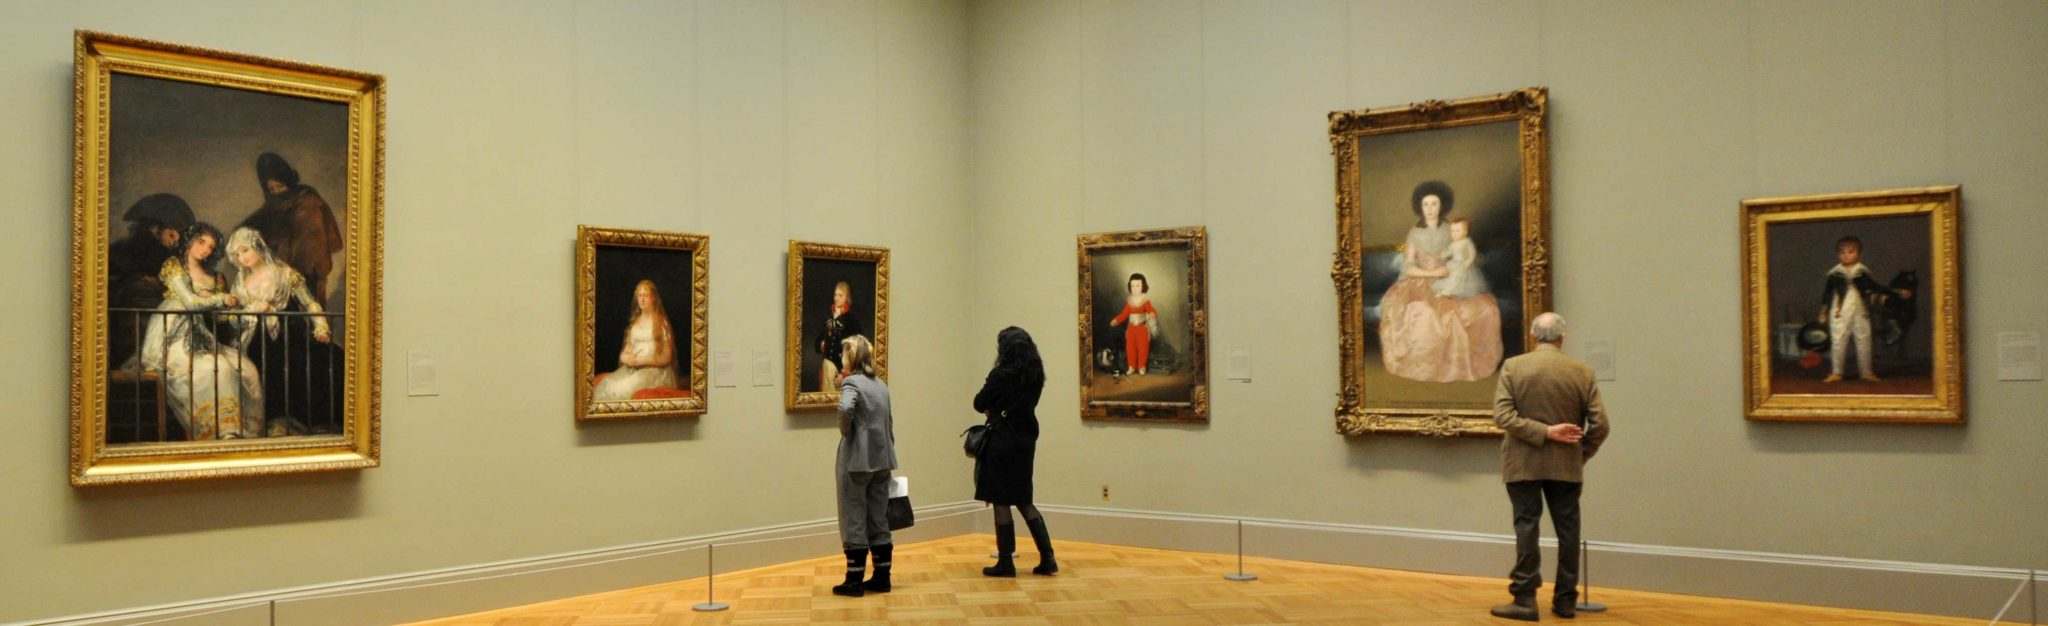 Gallery of European paintings at the Metropoliatan Museum of Art in New York City.